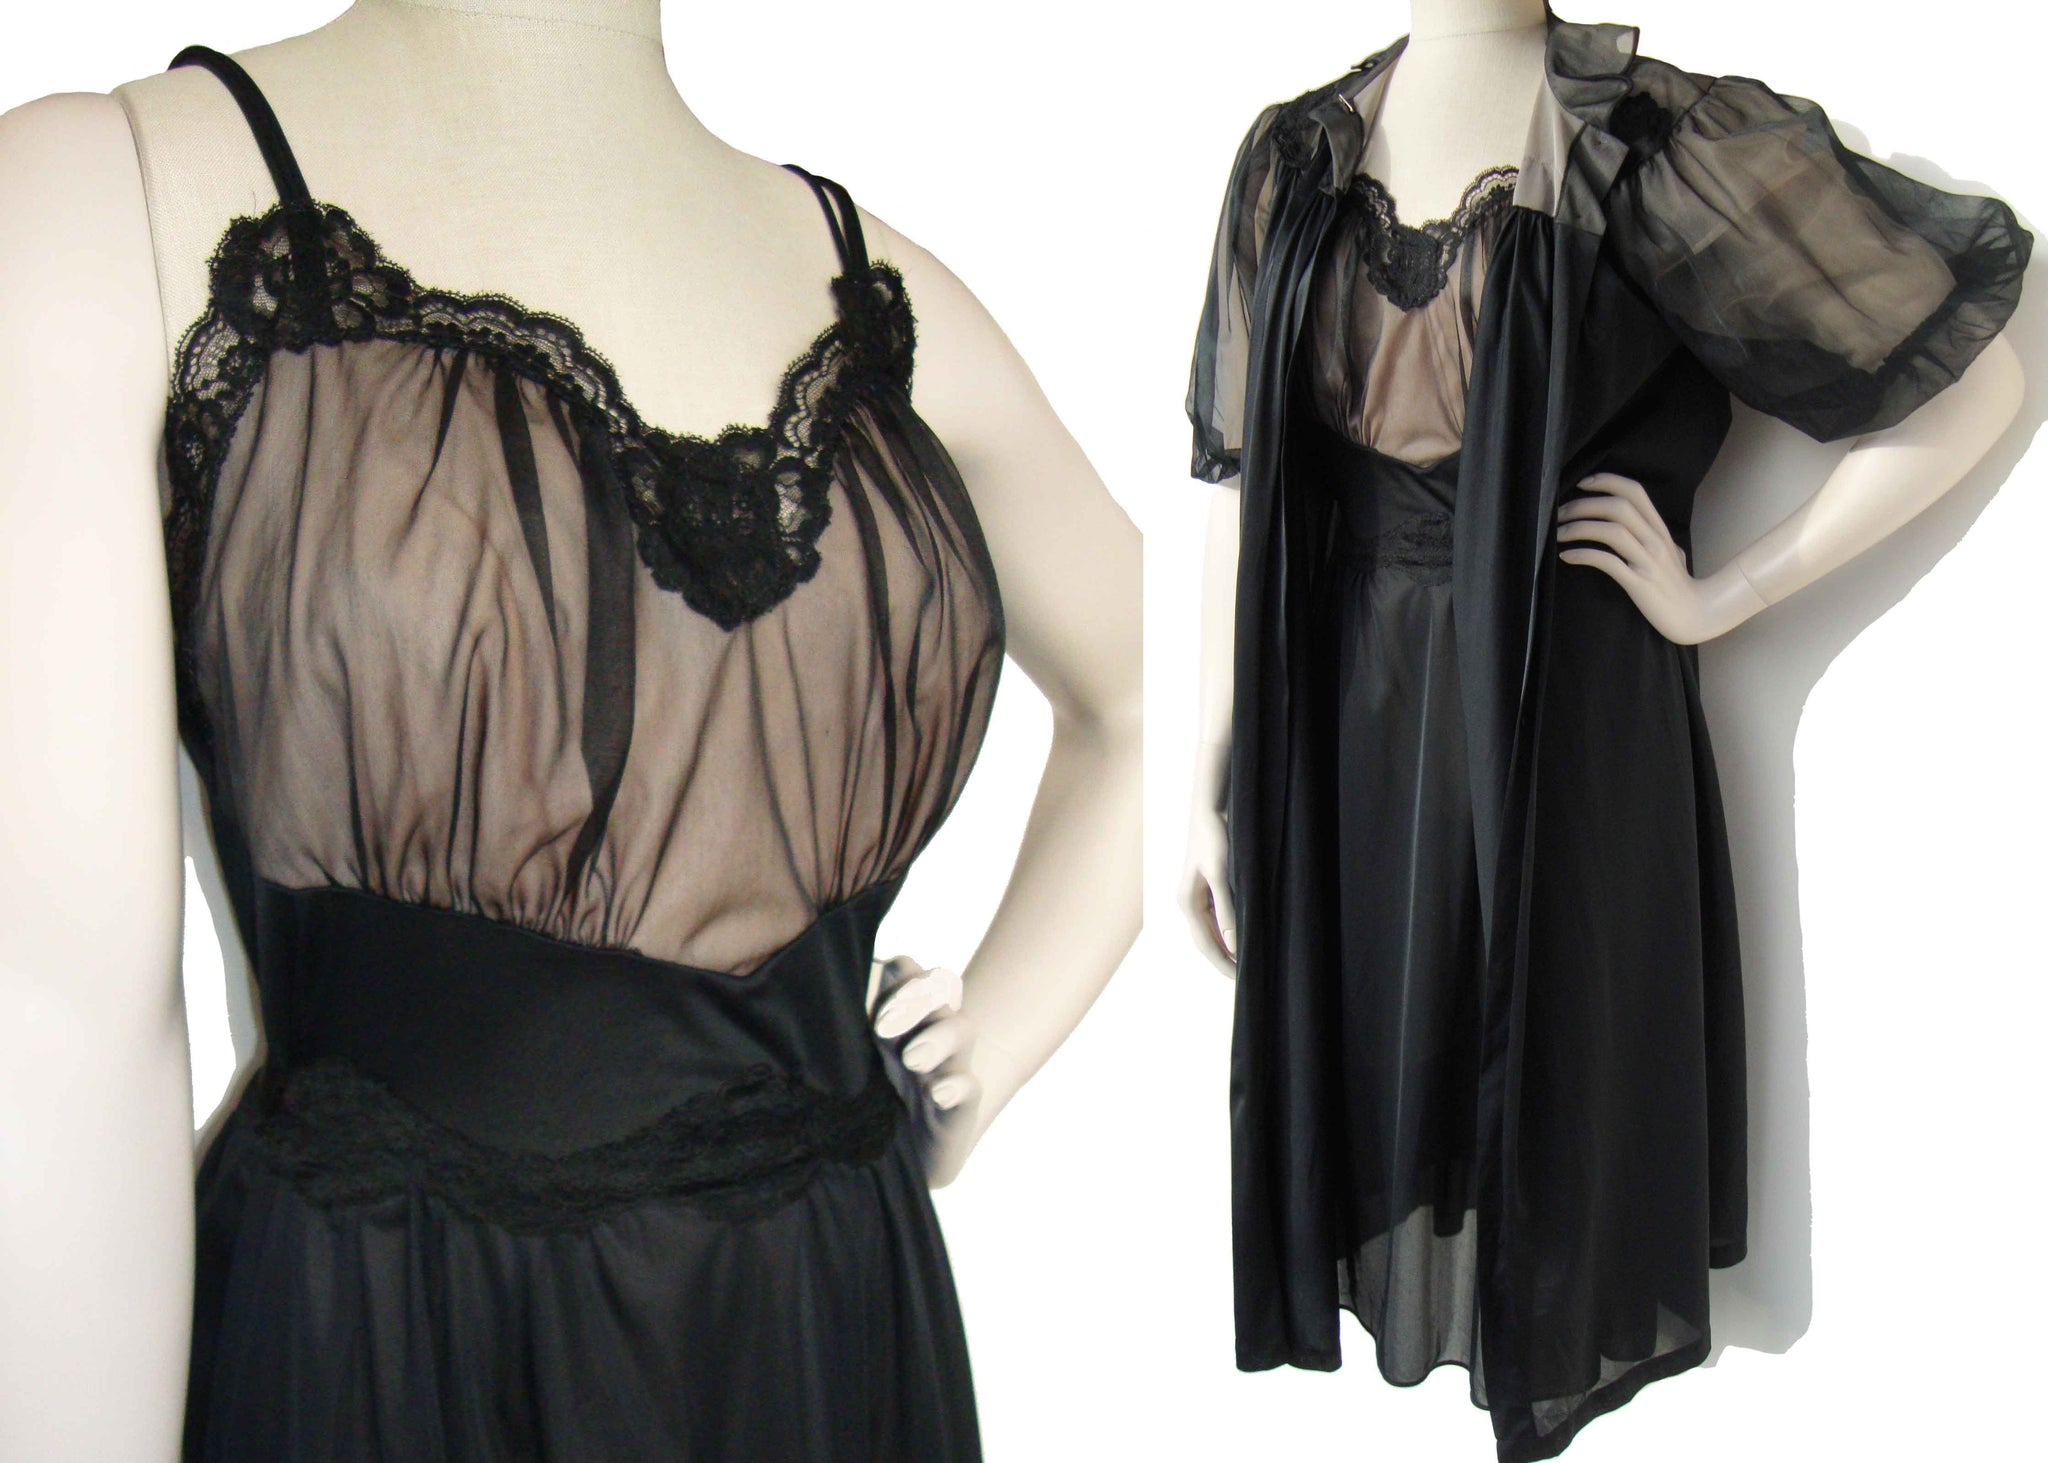 Vintage 50s Black Peignoir Set